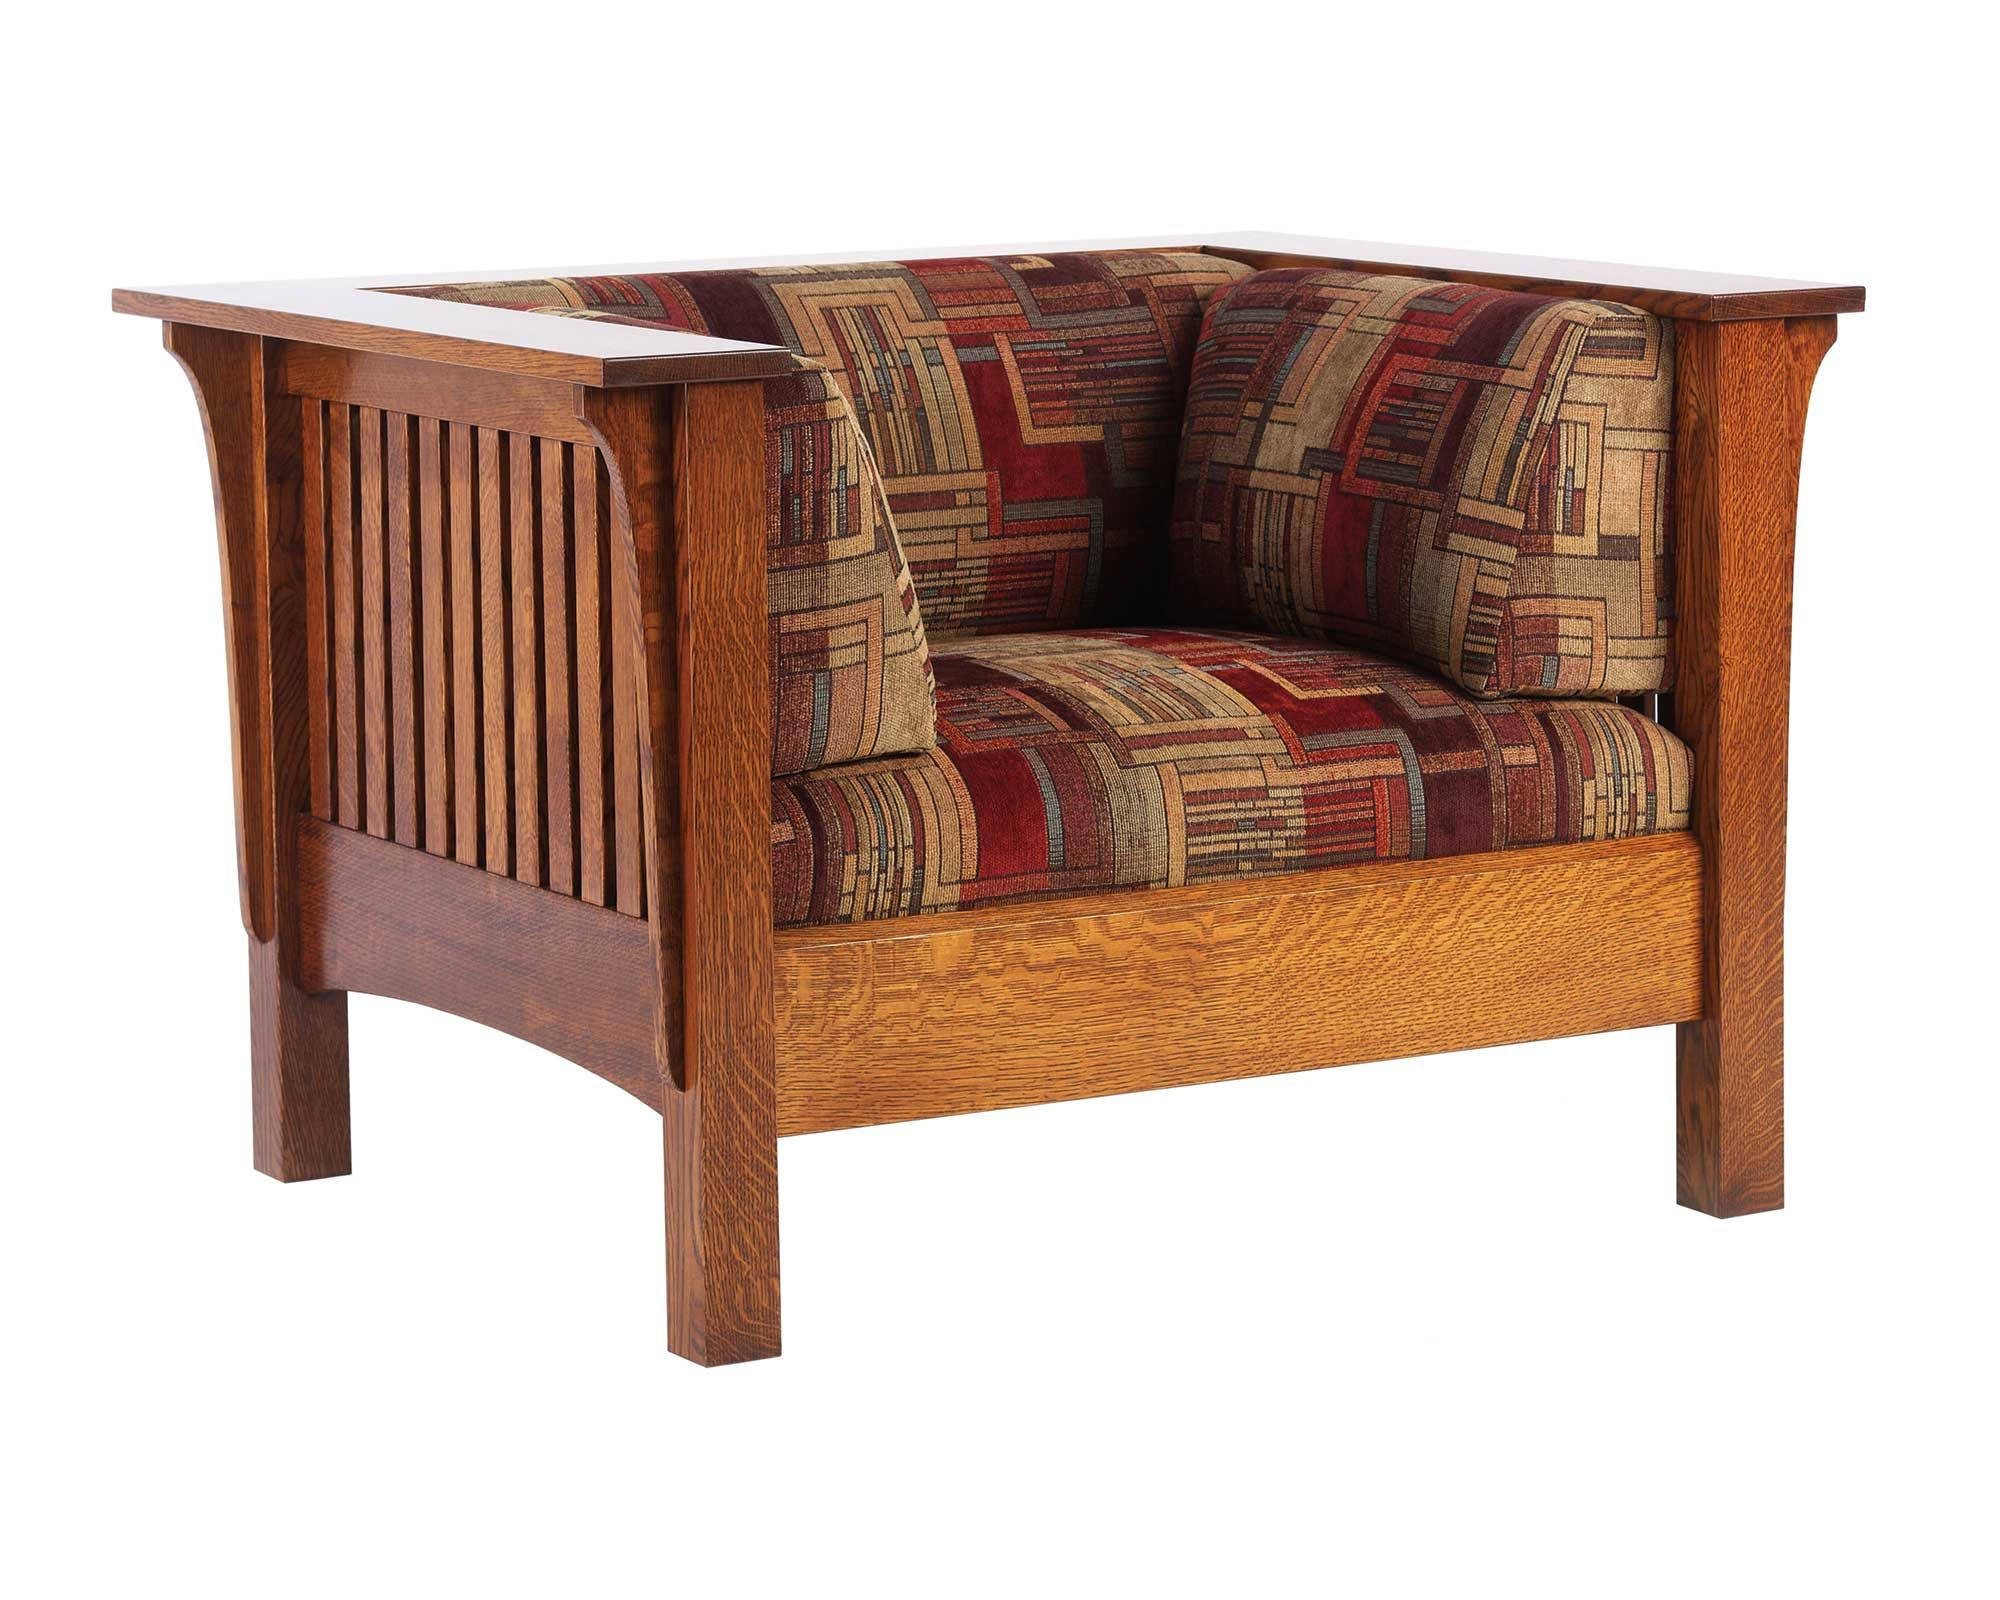 shaker style sofa plans white leather sleeper oak mission low back wide chair amish furniture solid